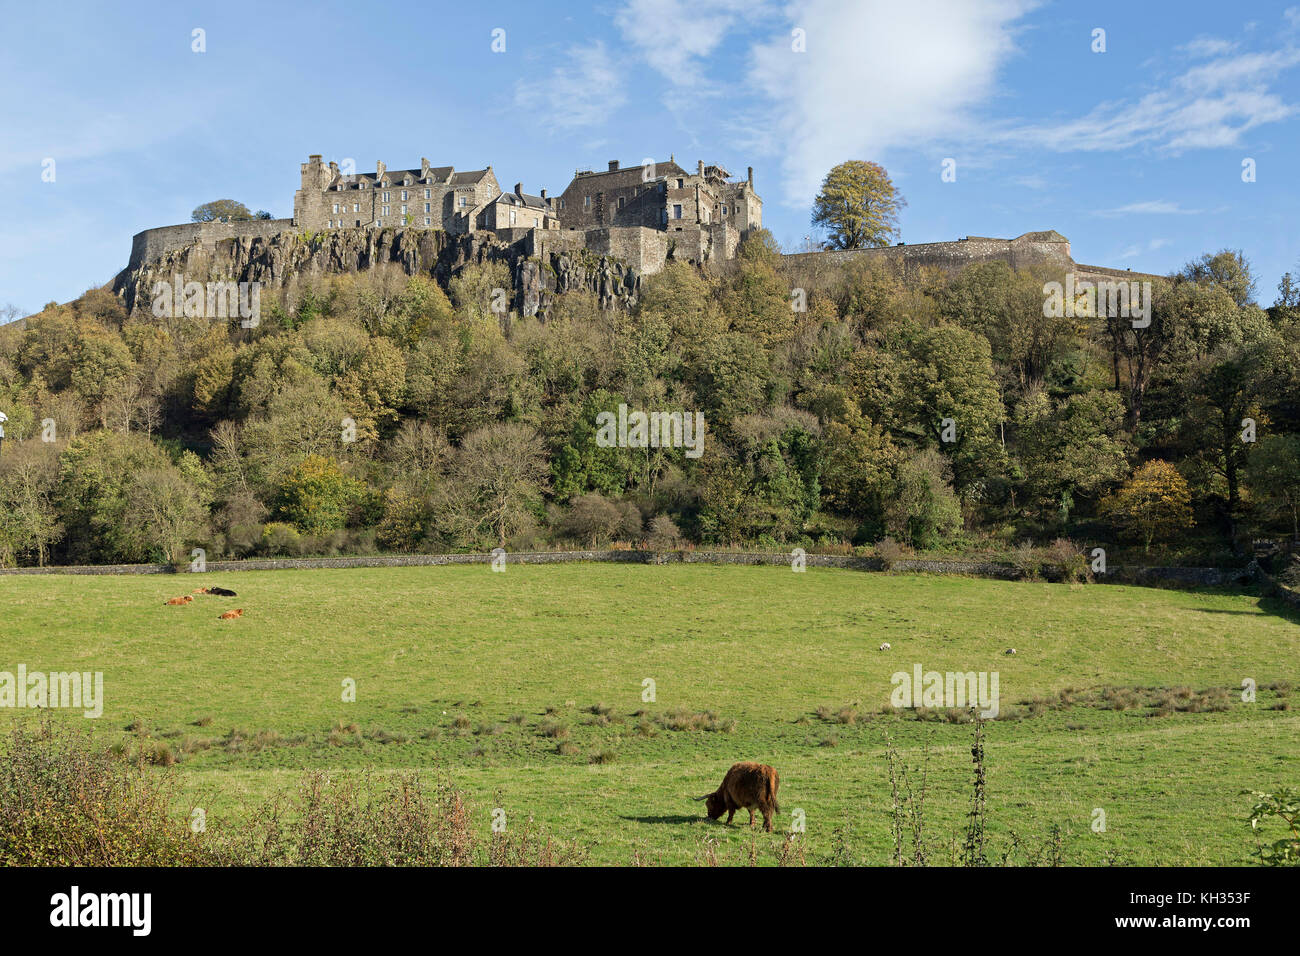 Stirling Castle, Stirling, Scotland, Great Britain - Stock Image